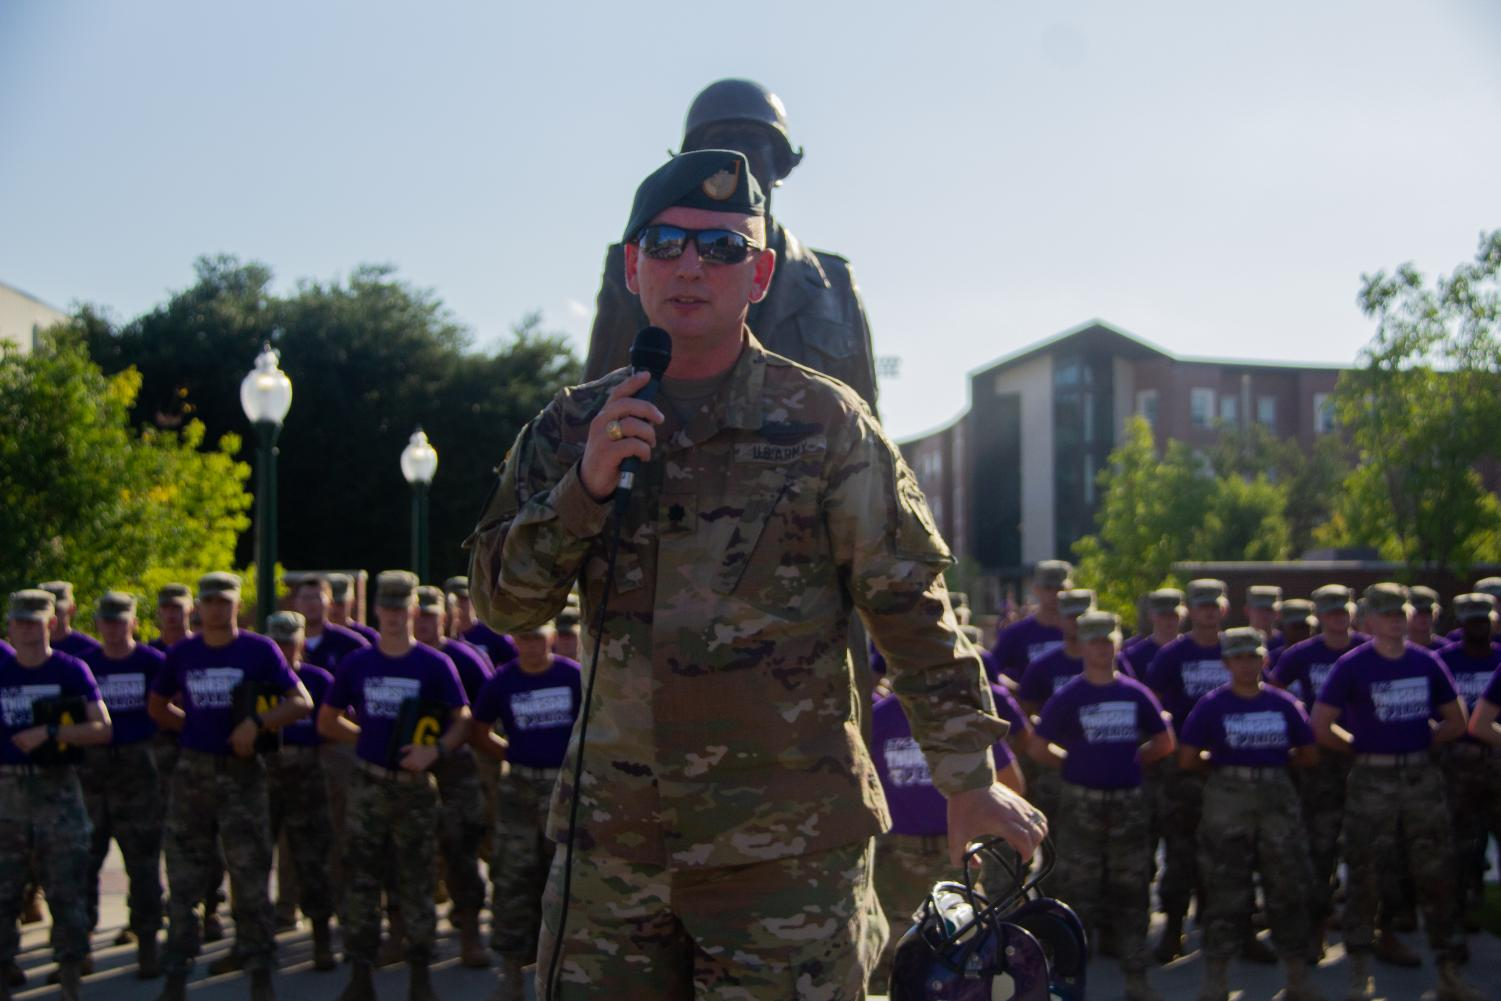 Tarleton ROTC listens while the Lieutenant Colonel Lee H. Evans gives a speech at Point-du-Hoc during T-week.